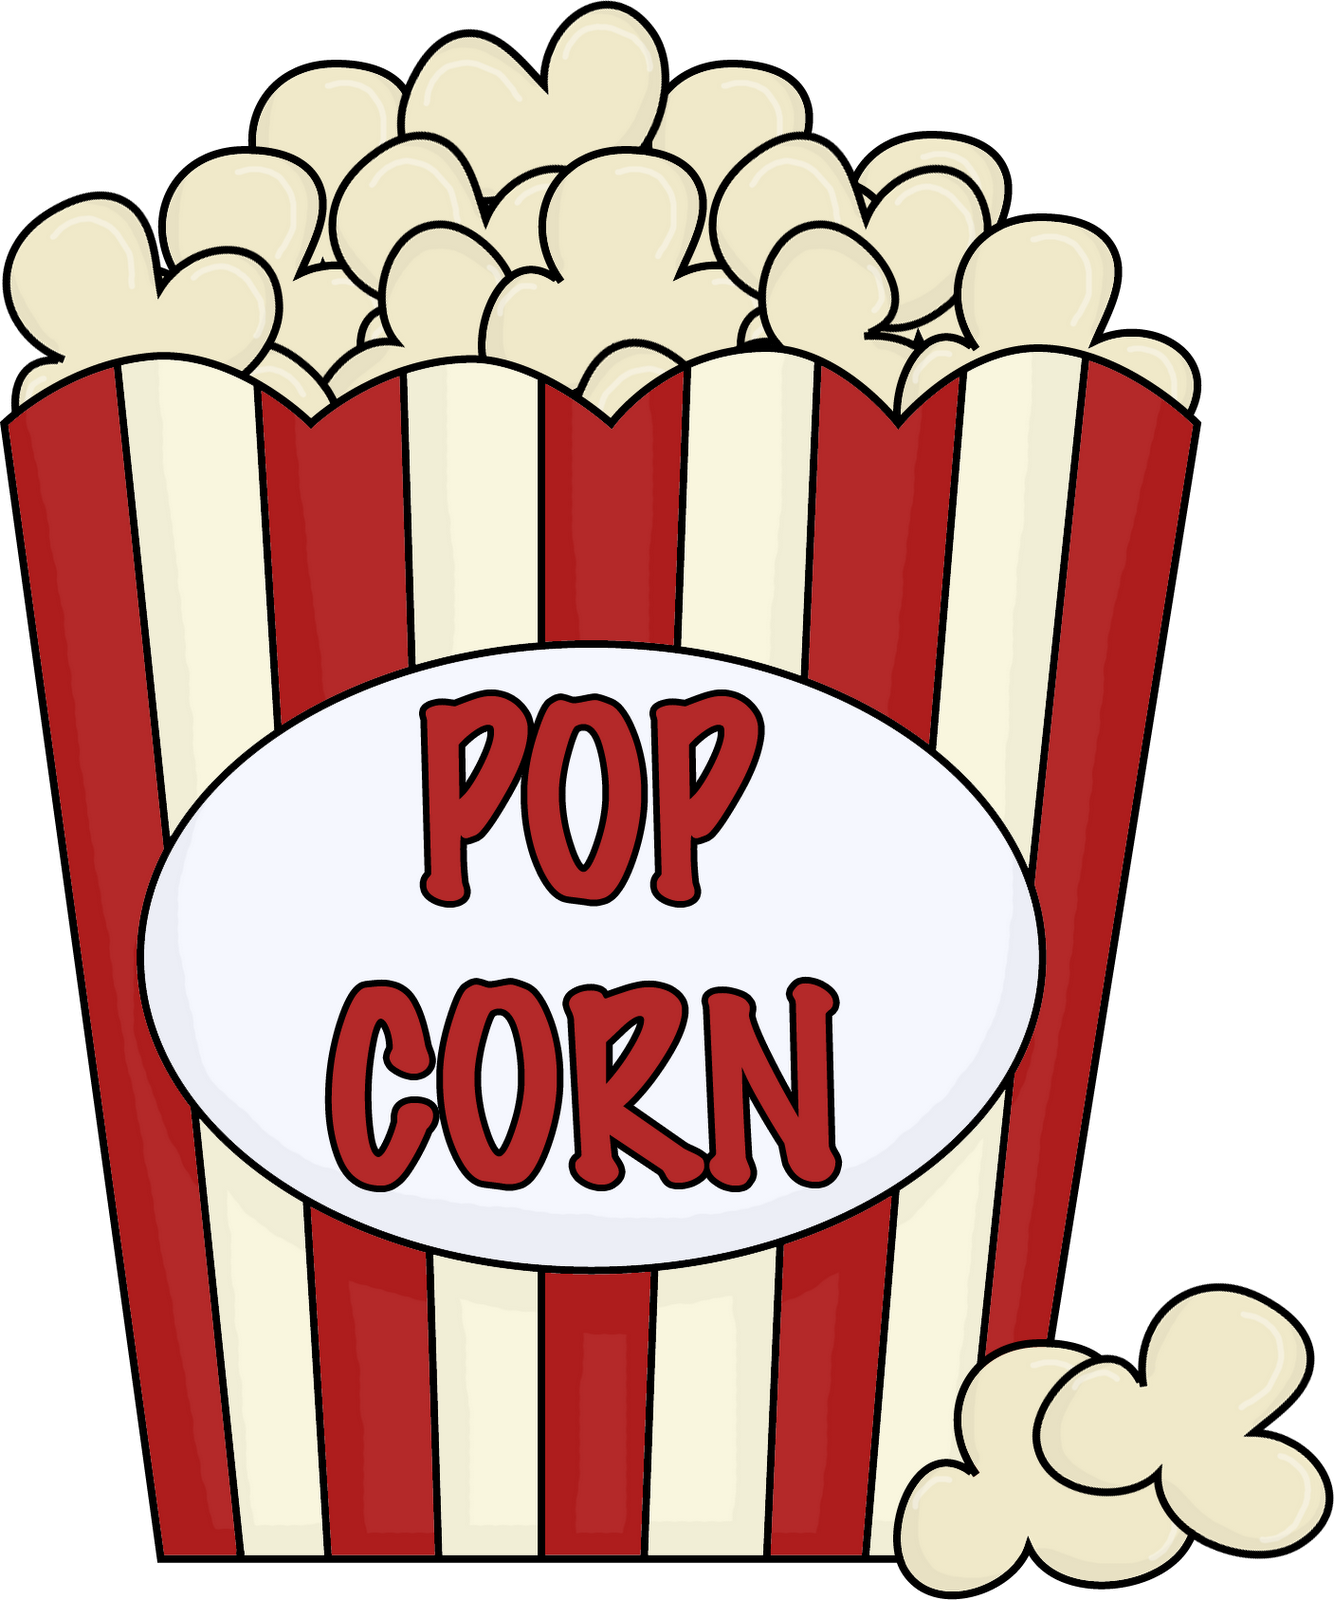 Images For > Popcorn Bag Clipart